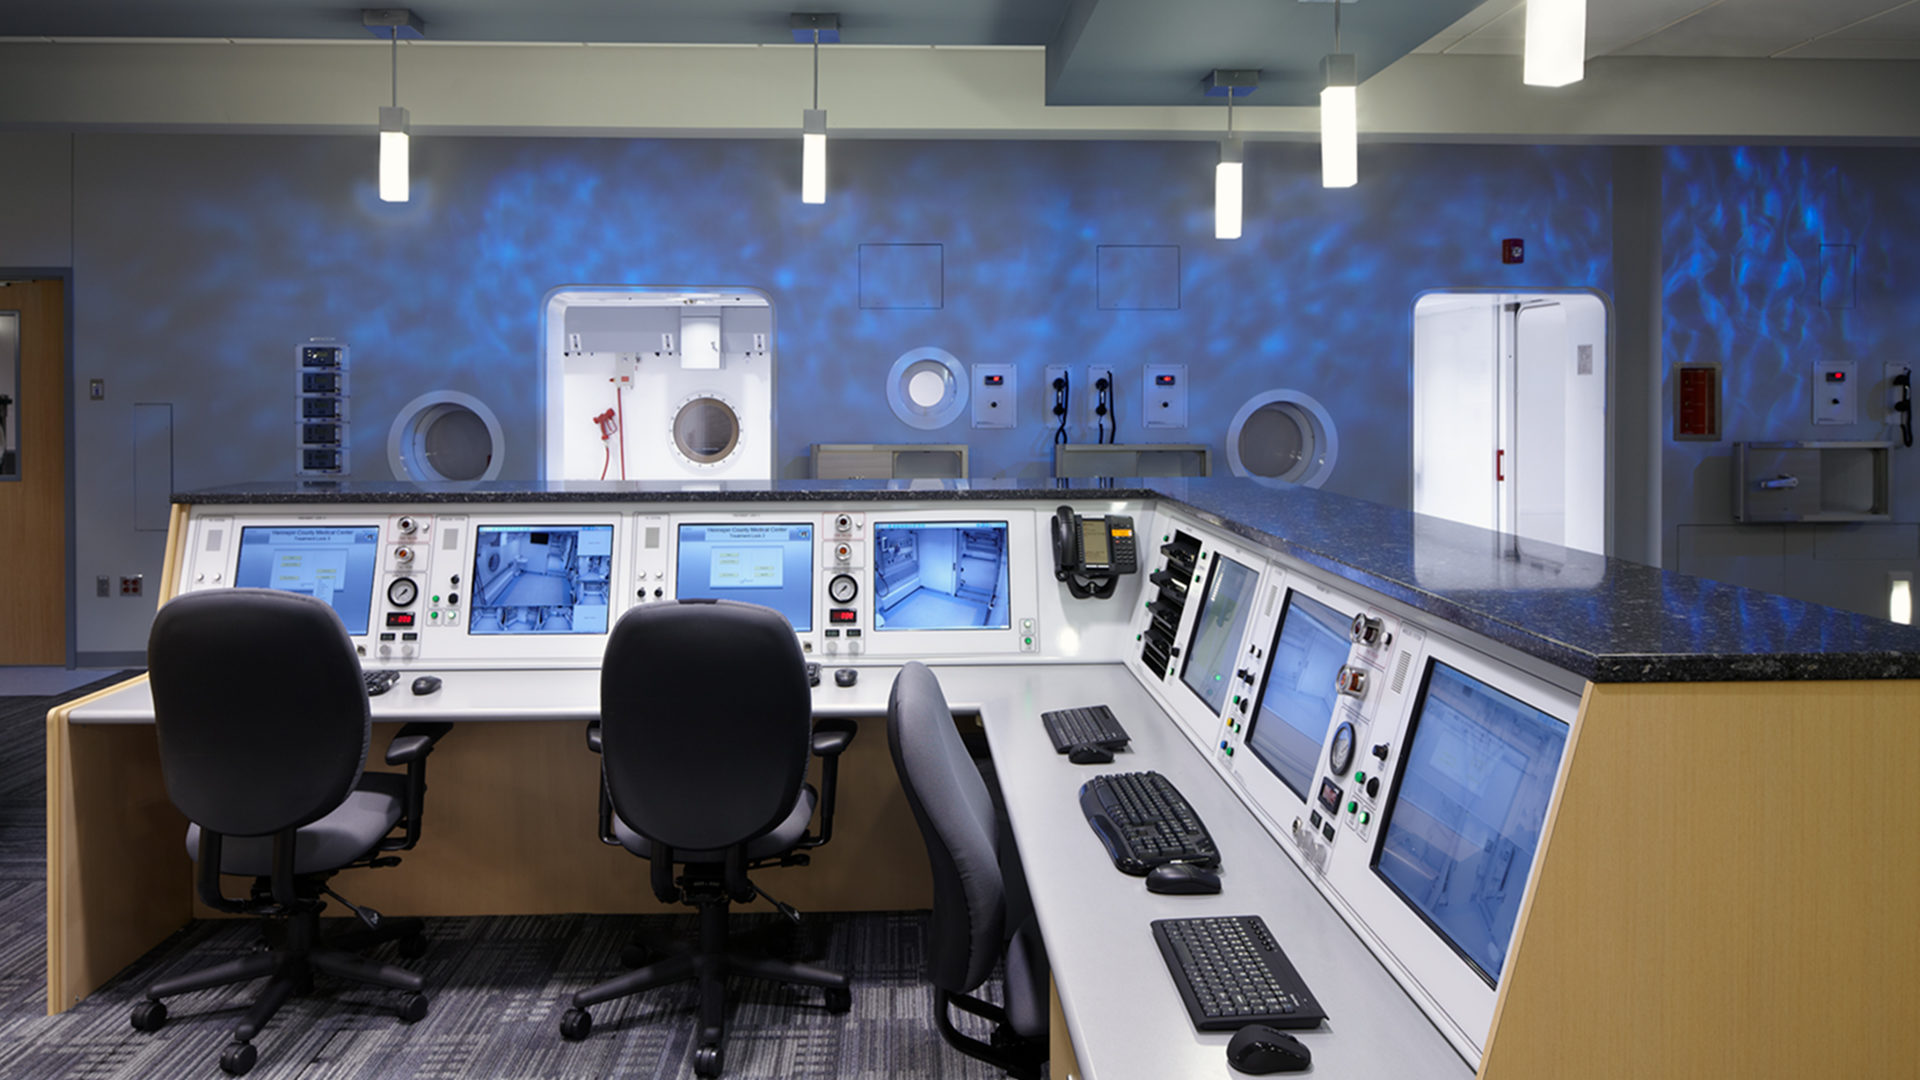 HCMC Hyperbaric Chamber Interior Suites From Behind the Control Desk